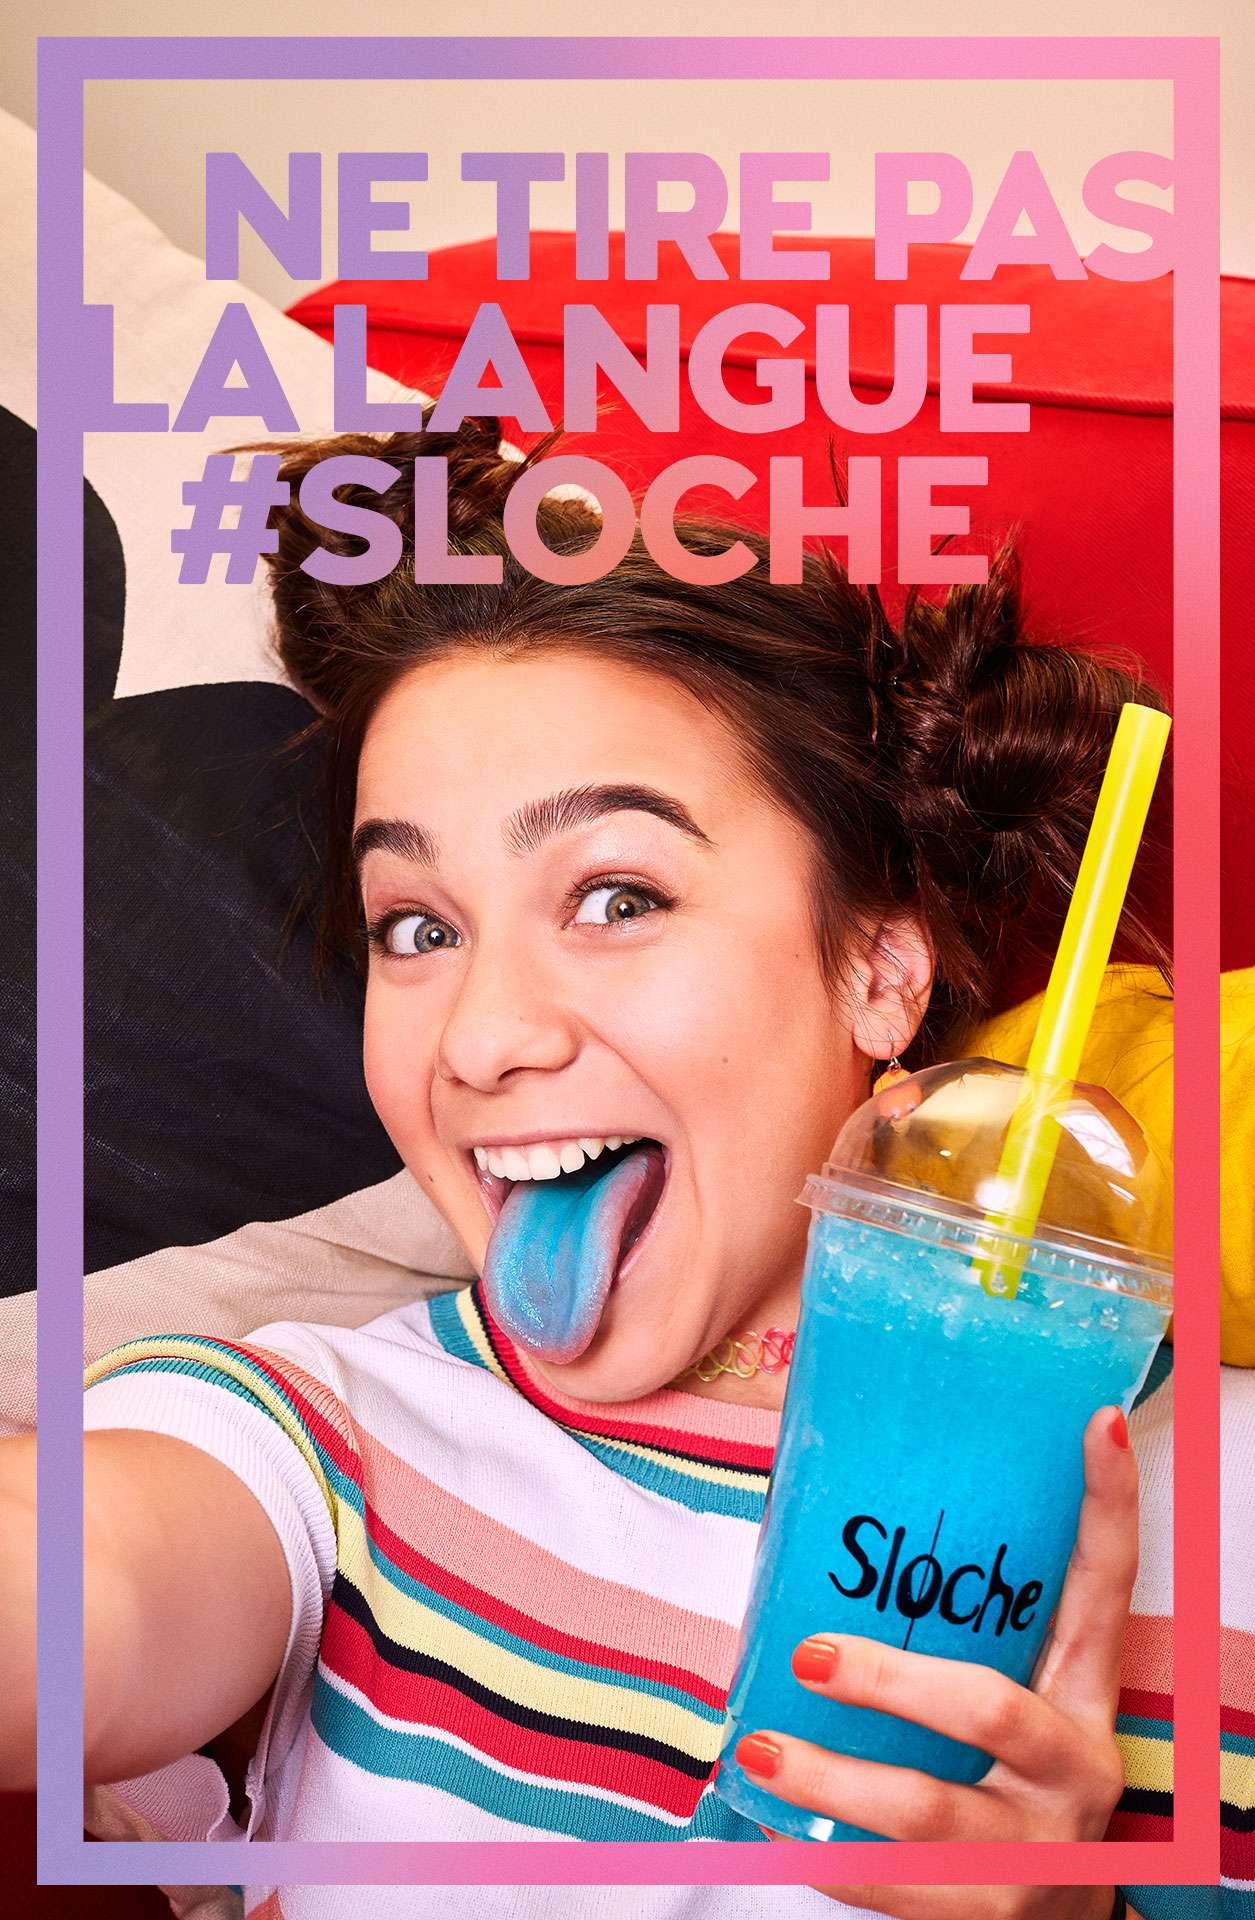 young teenage girl taking selfie holding blue slurpee sticking her blue-stained tongue out by Jocelyn Michel for Sloche Couche Tard with Havas